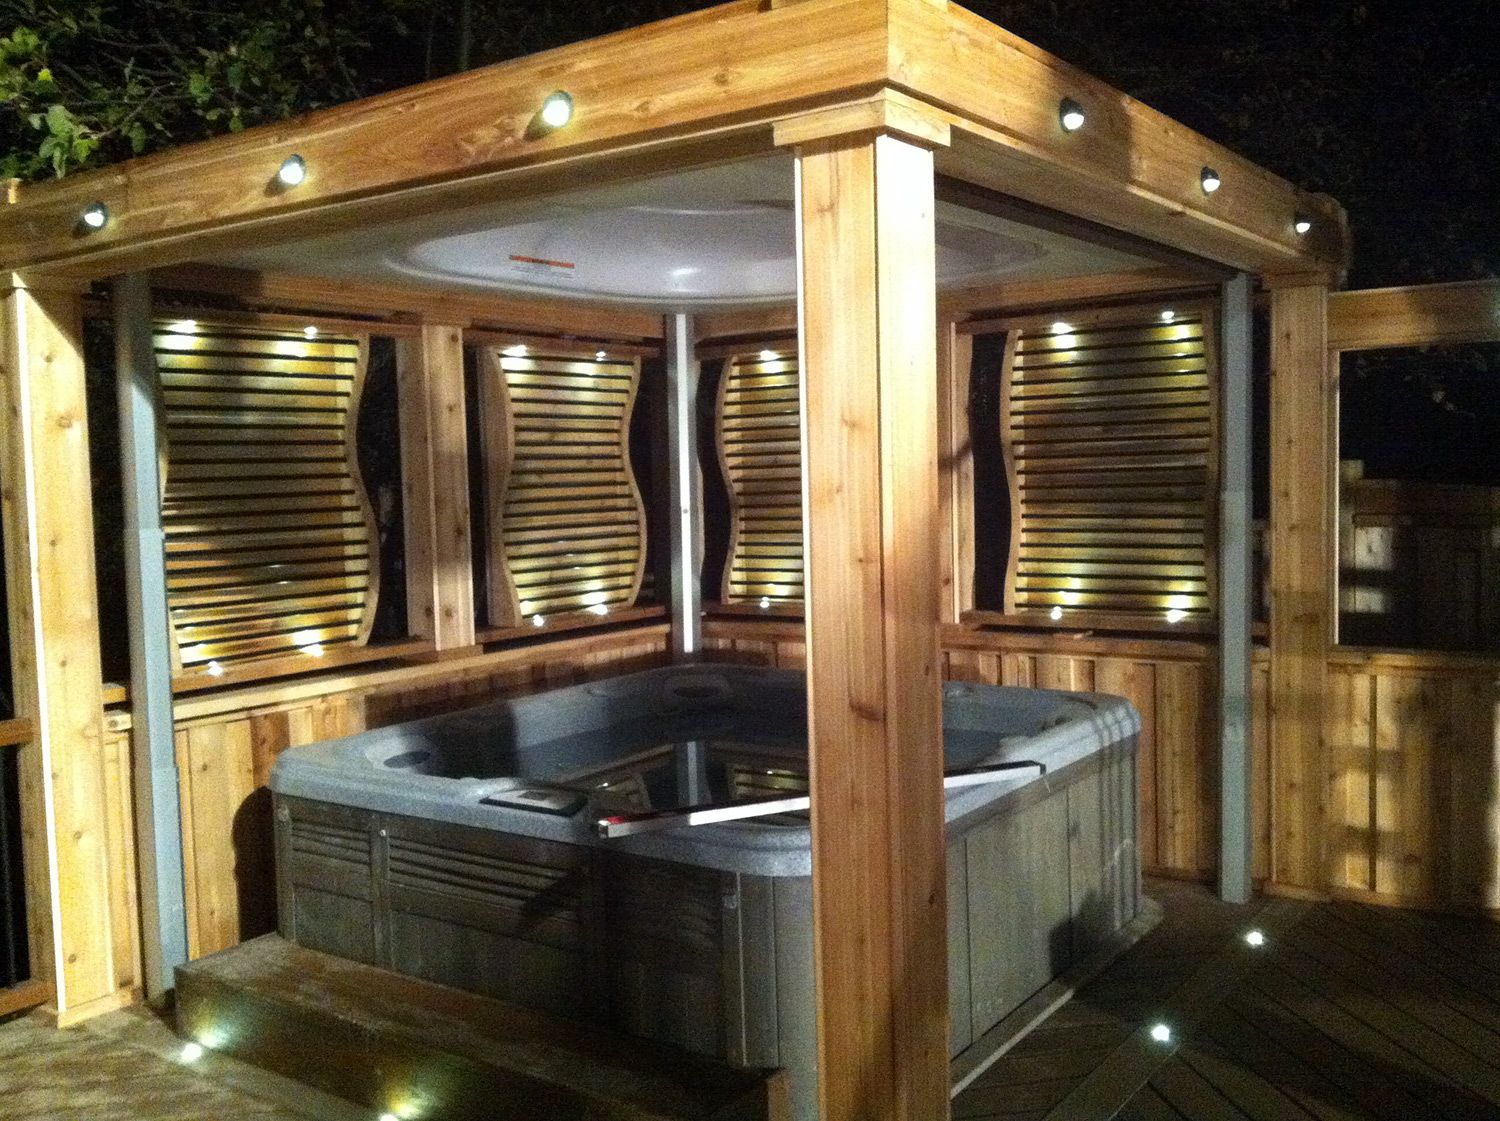 Enclosed Hot Tub Area Complete With Lighting Privacy Screens And Curtains The Roof Is Also A Retractable Cover That Lowers Onto When Not In Use